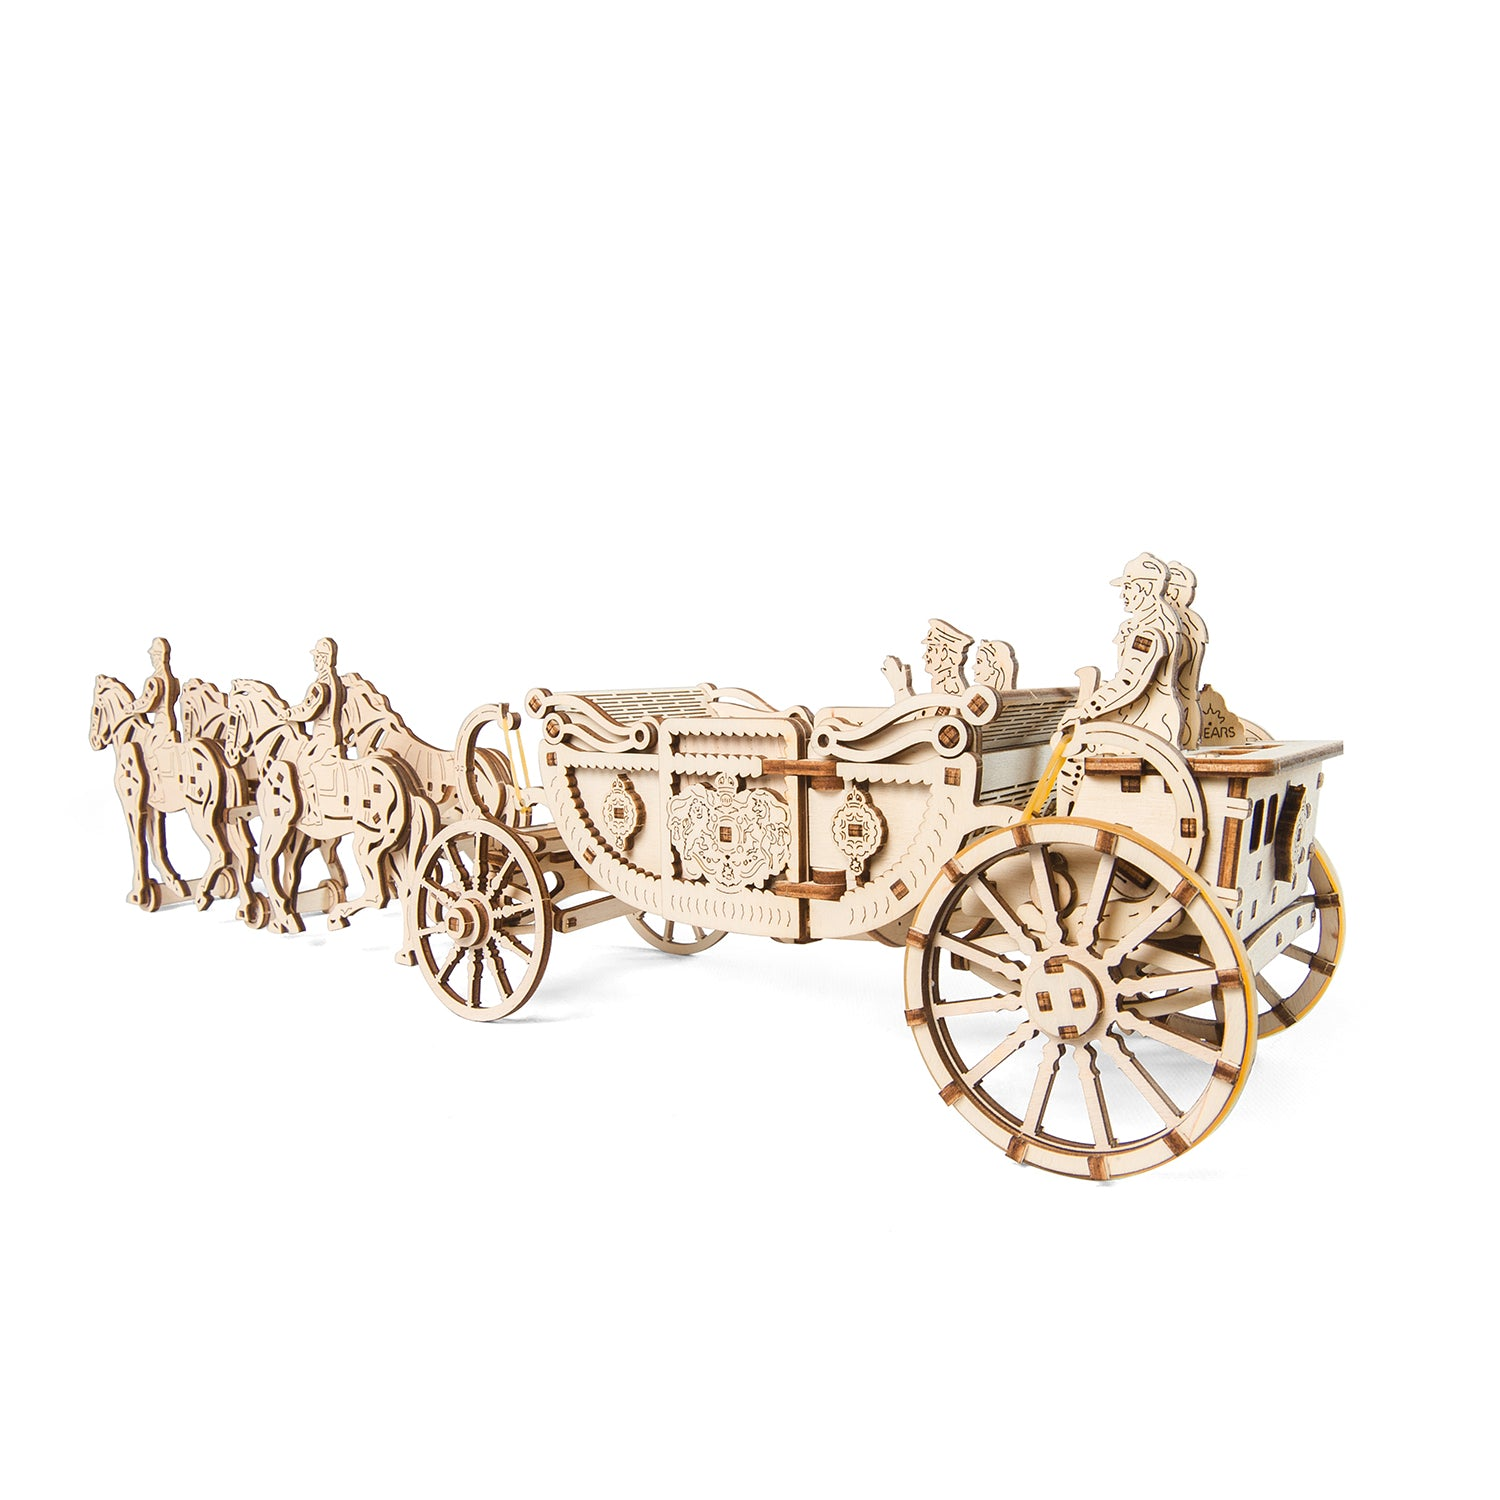 Royal Carriage (Limited edition)